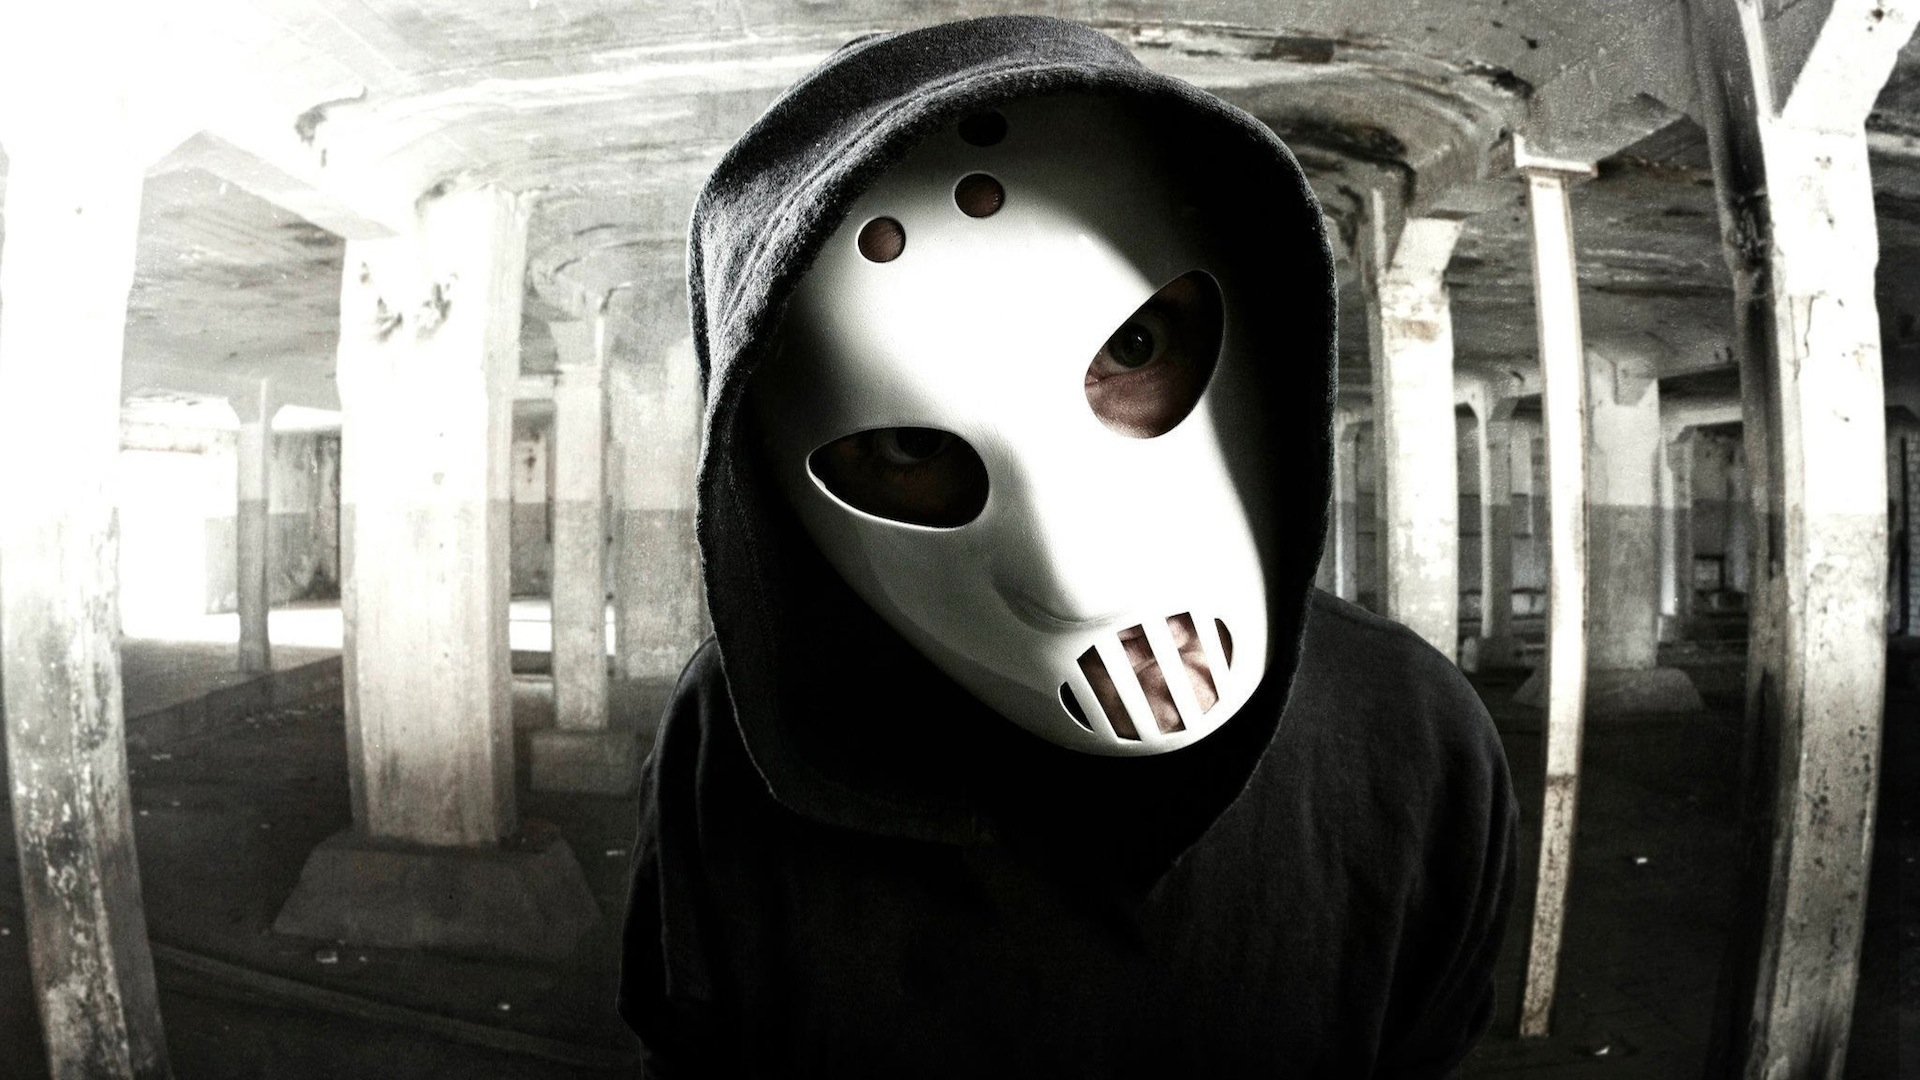 Angerfist Backgrounds, Compatible - PC, Mobile, Gadgets| 1920x1080 px